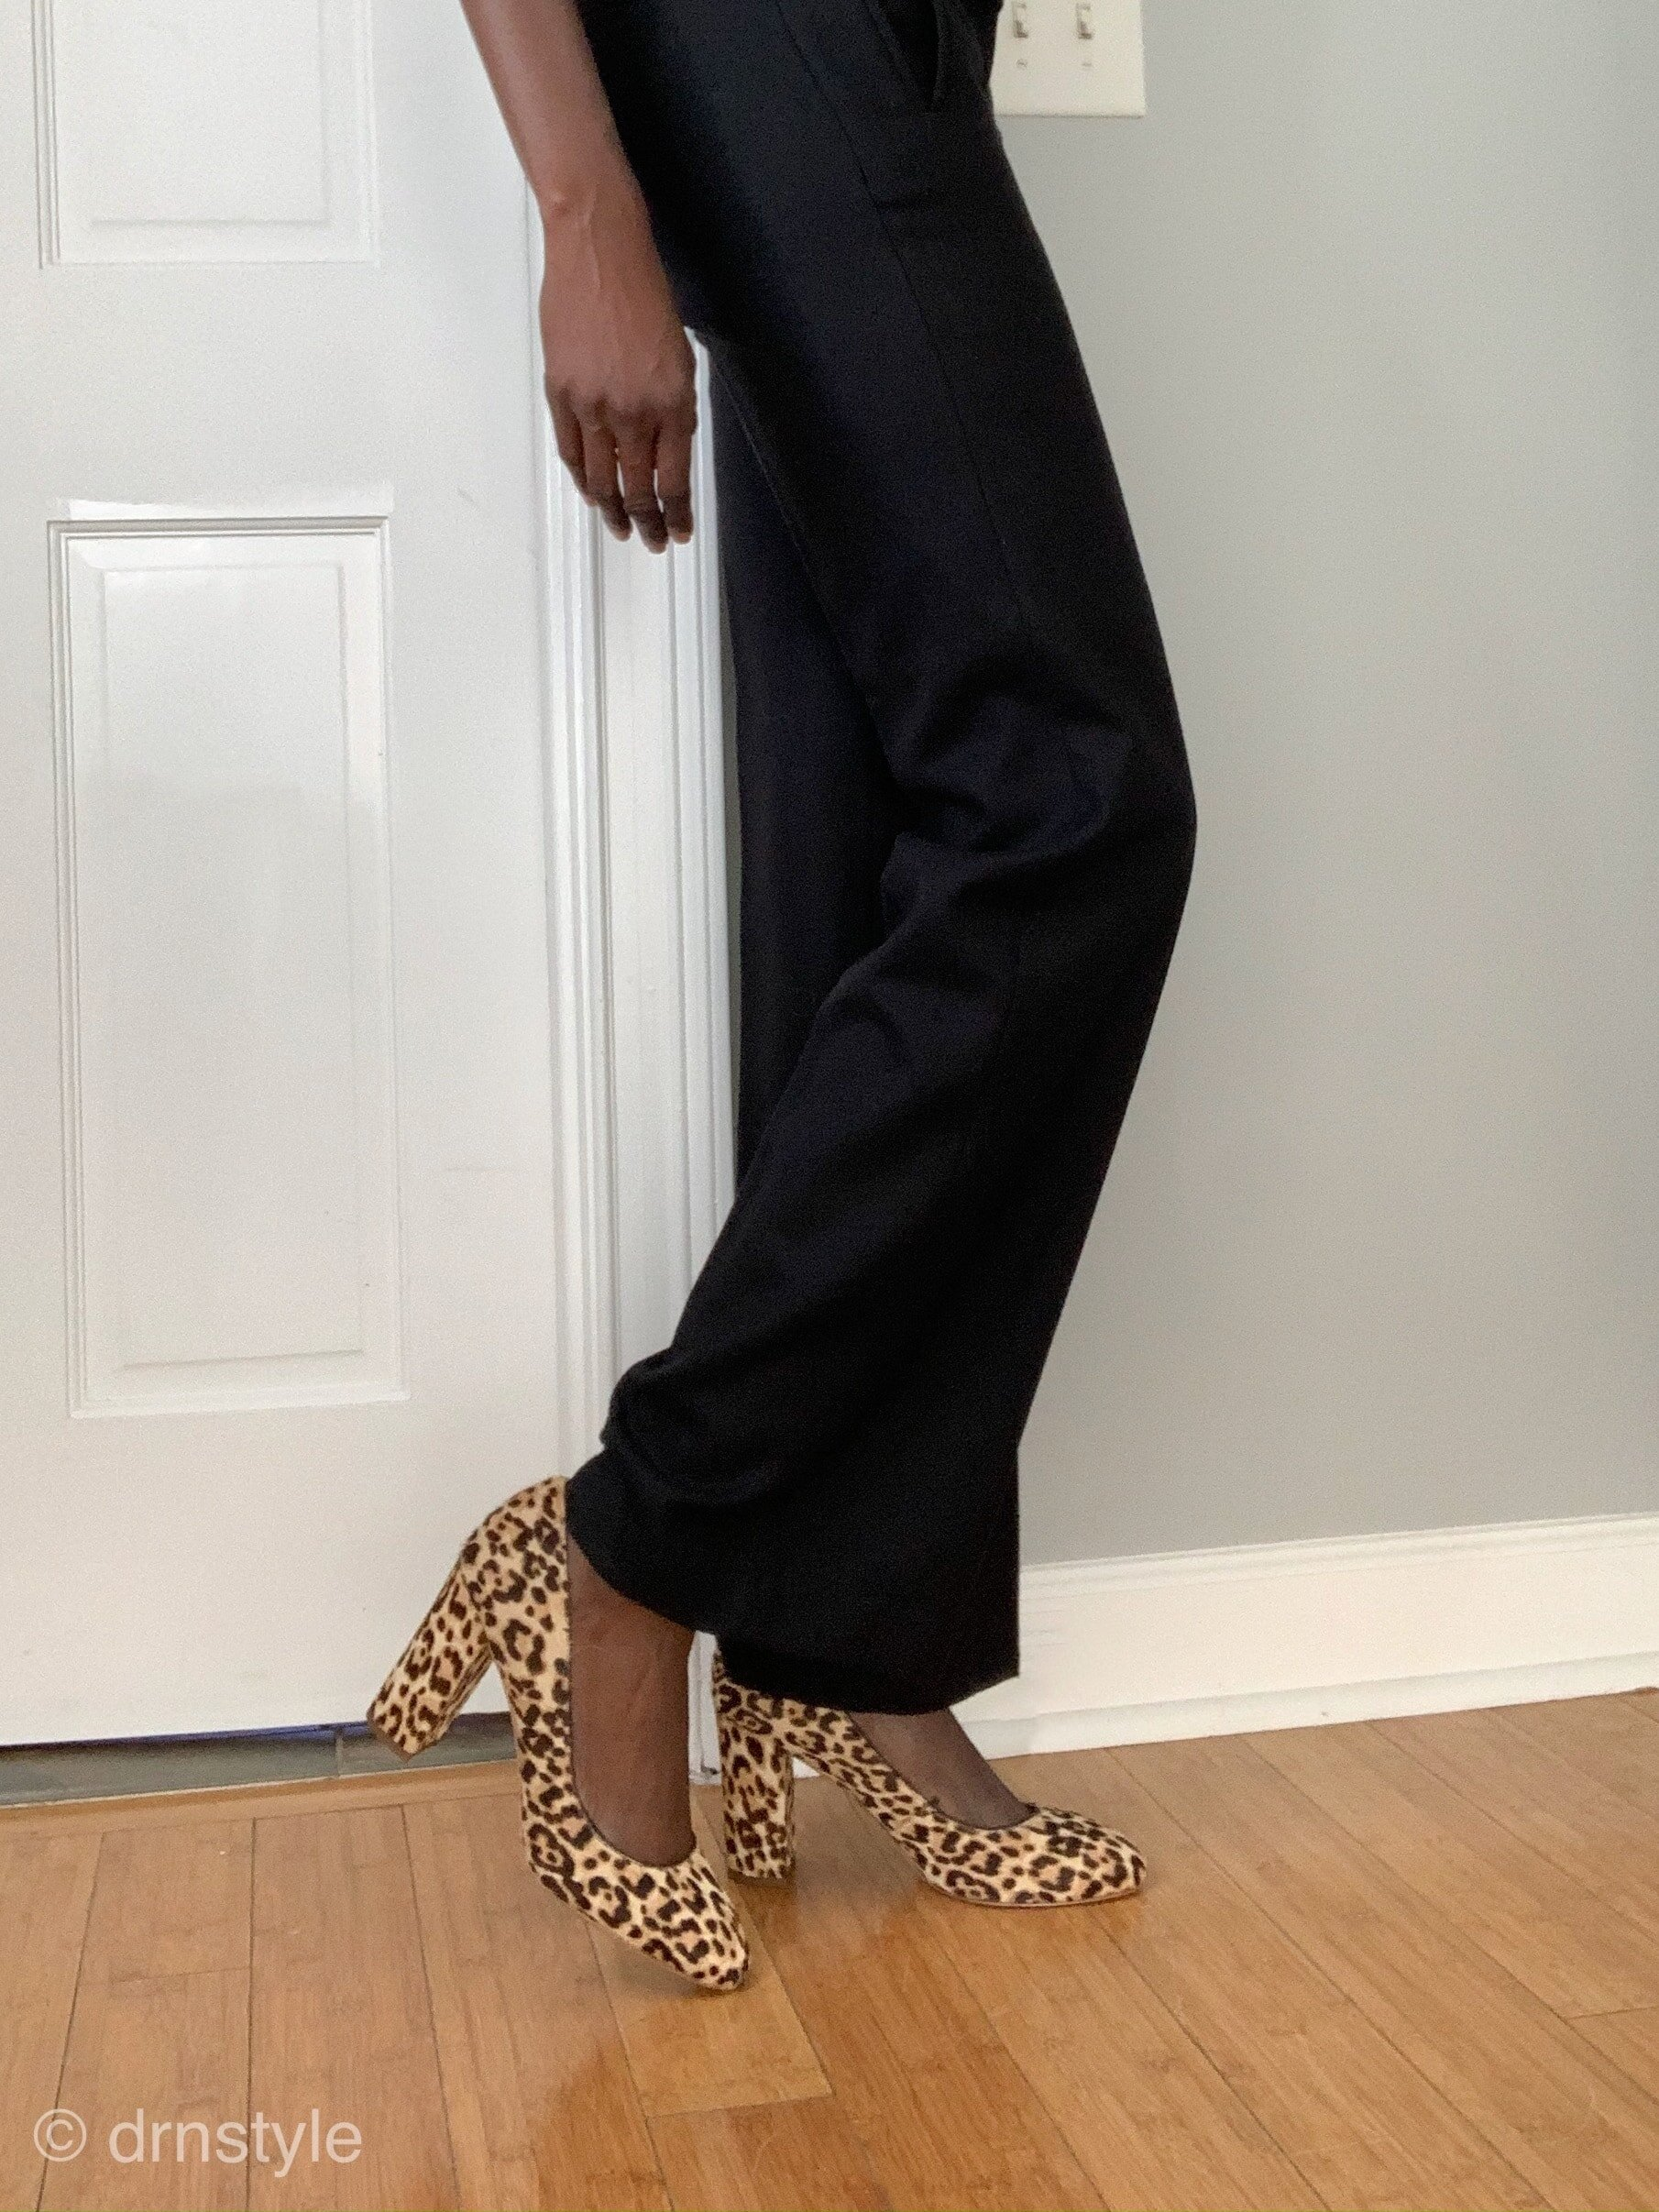 Leopard print heels give a nice splash of color to this all black ensemble.